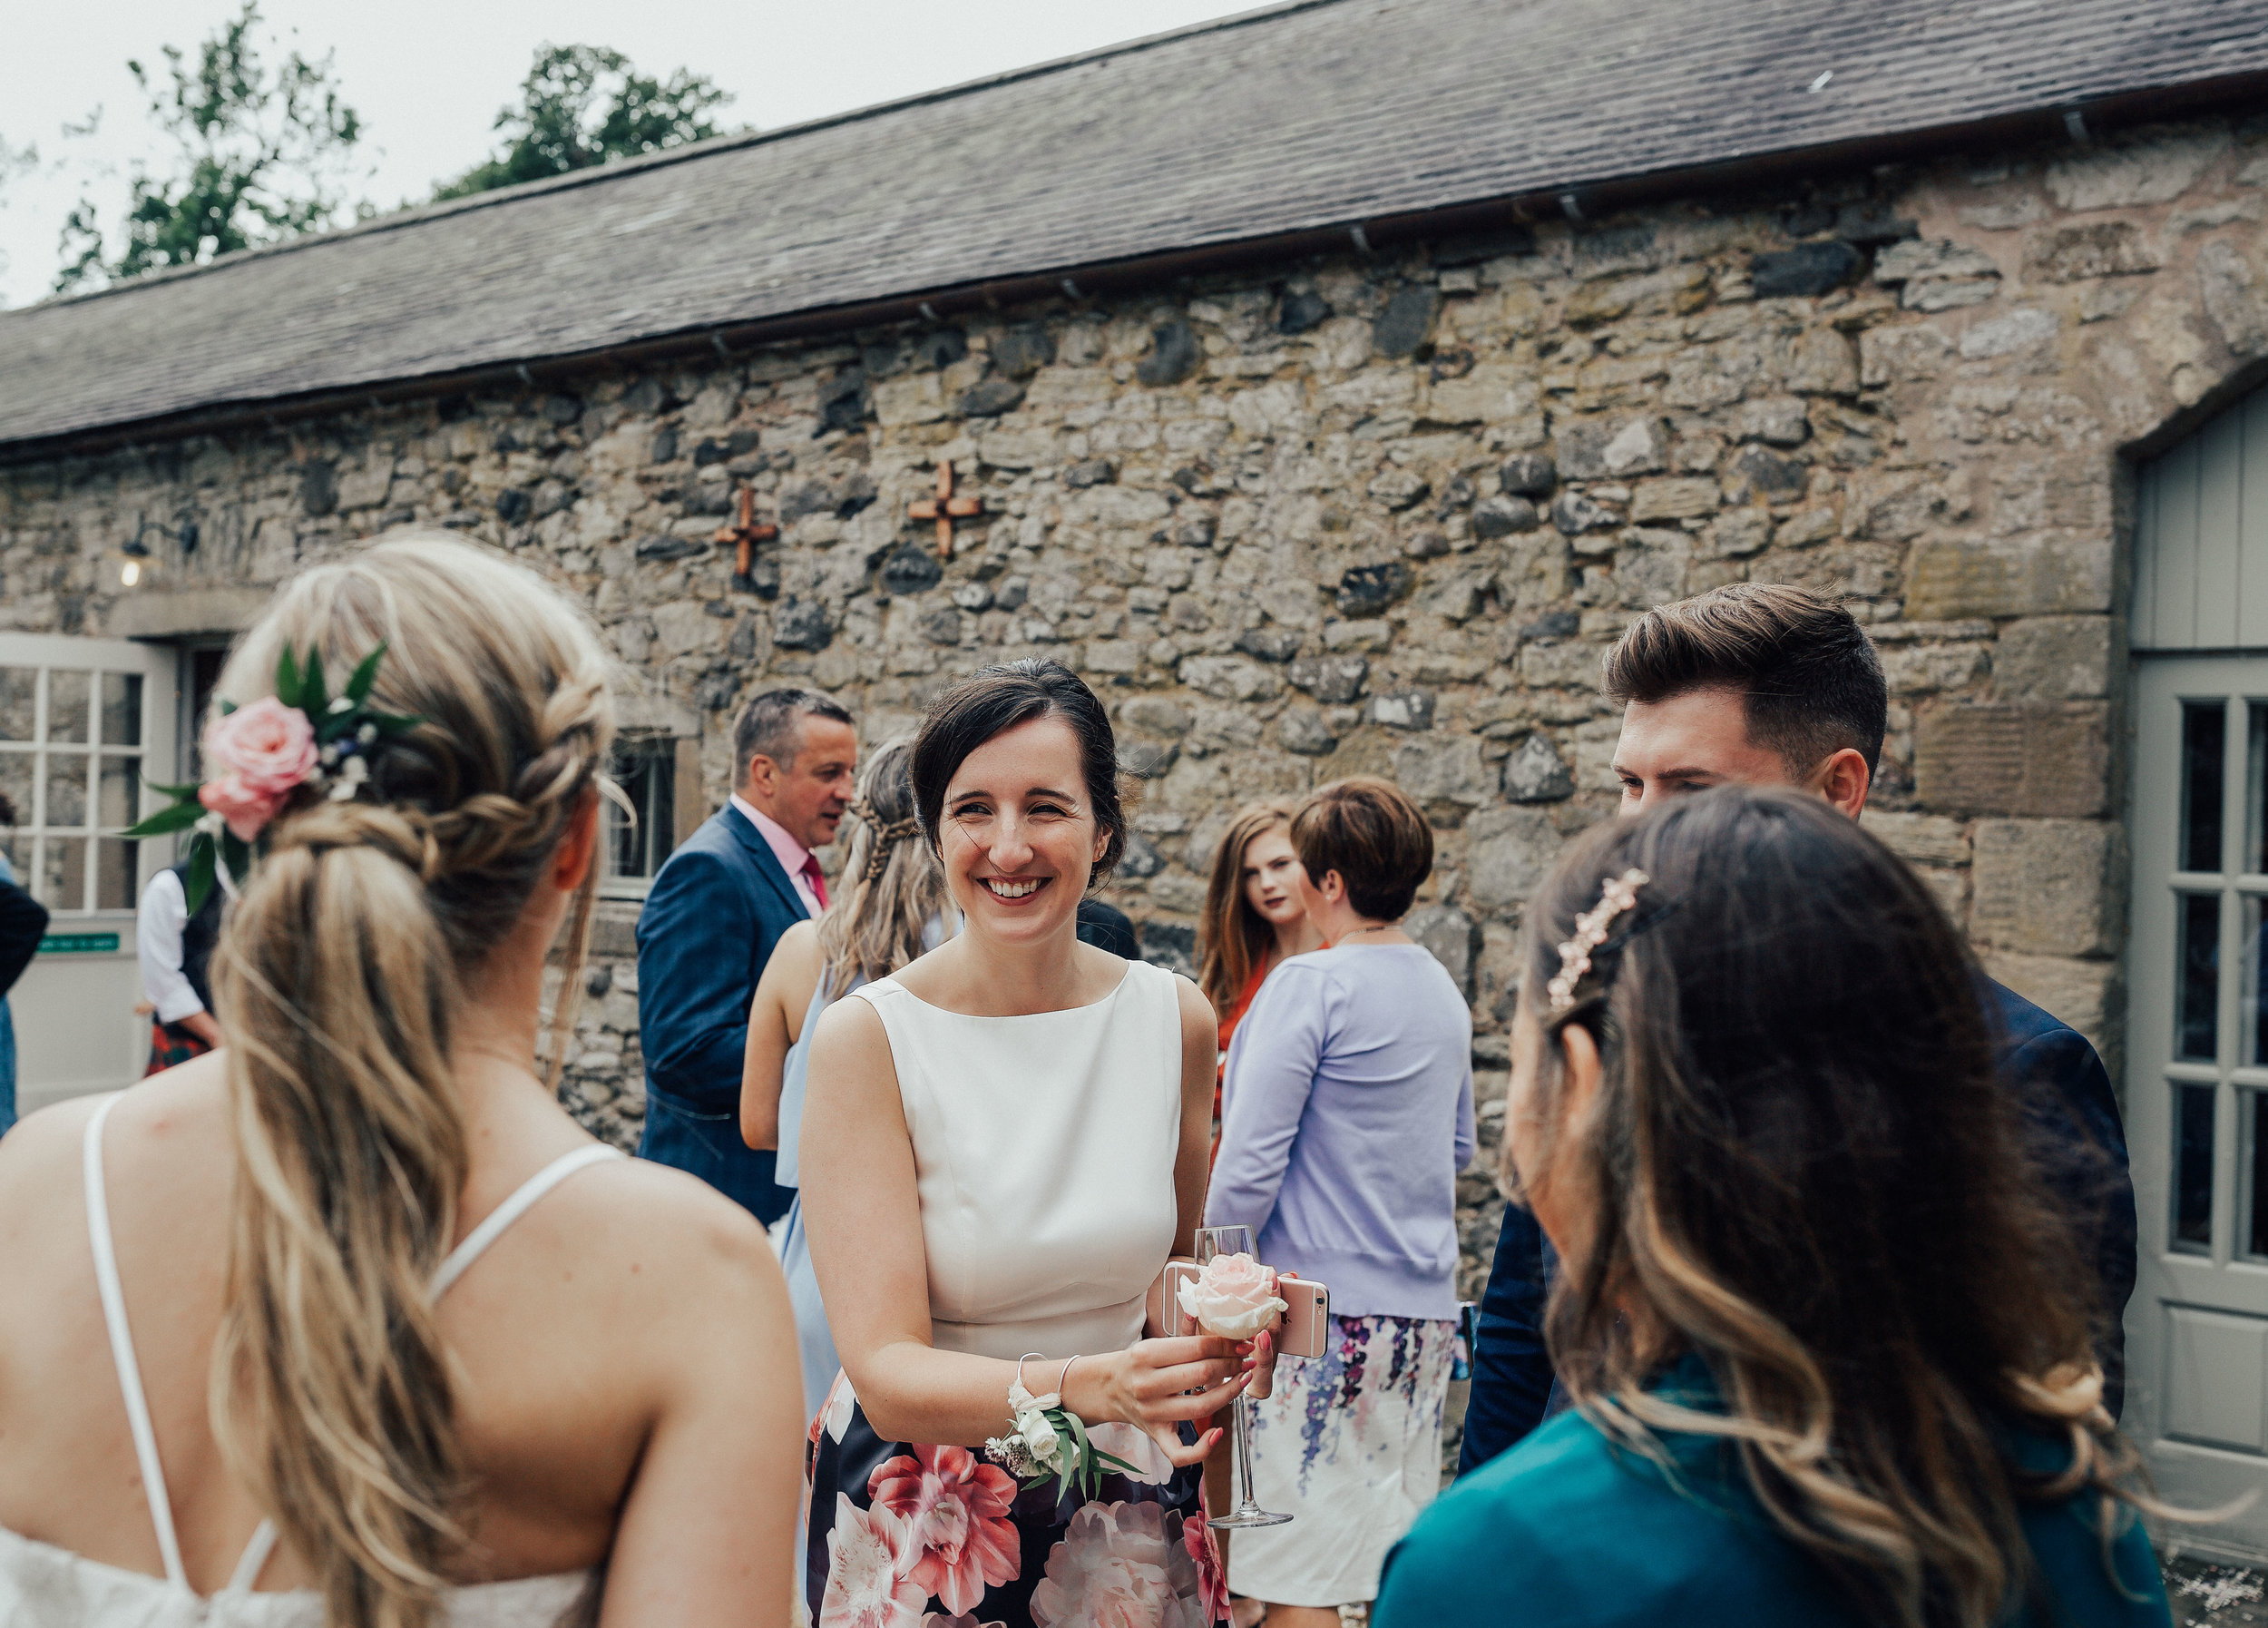 PJ_PHILLIPS_PHOTOGRAPHY_EDINBURGH_WEDDERBURN_BARNS_WEDDING_EDINBURGH_WEDDING_PHOTOGRAPHER_106.jpg